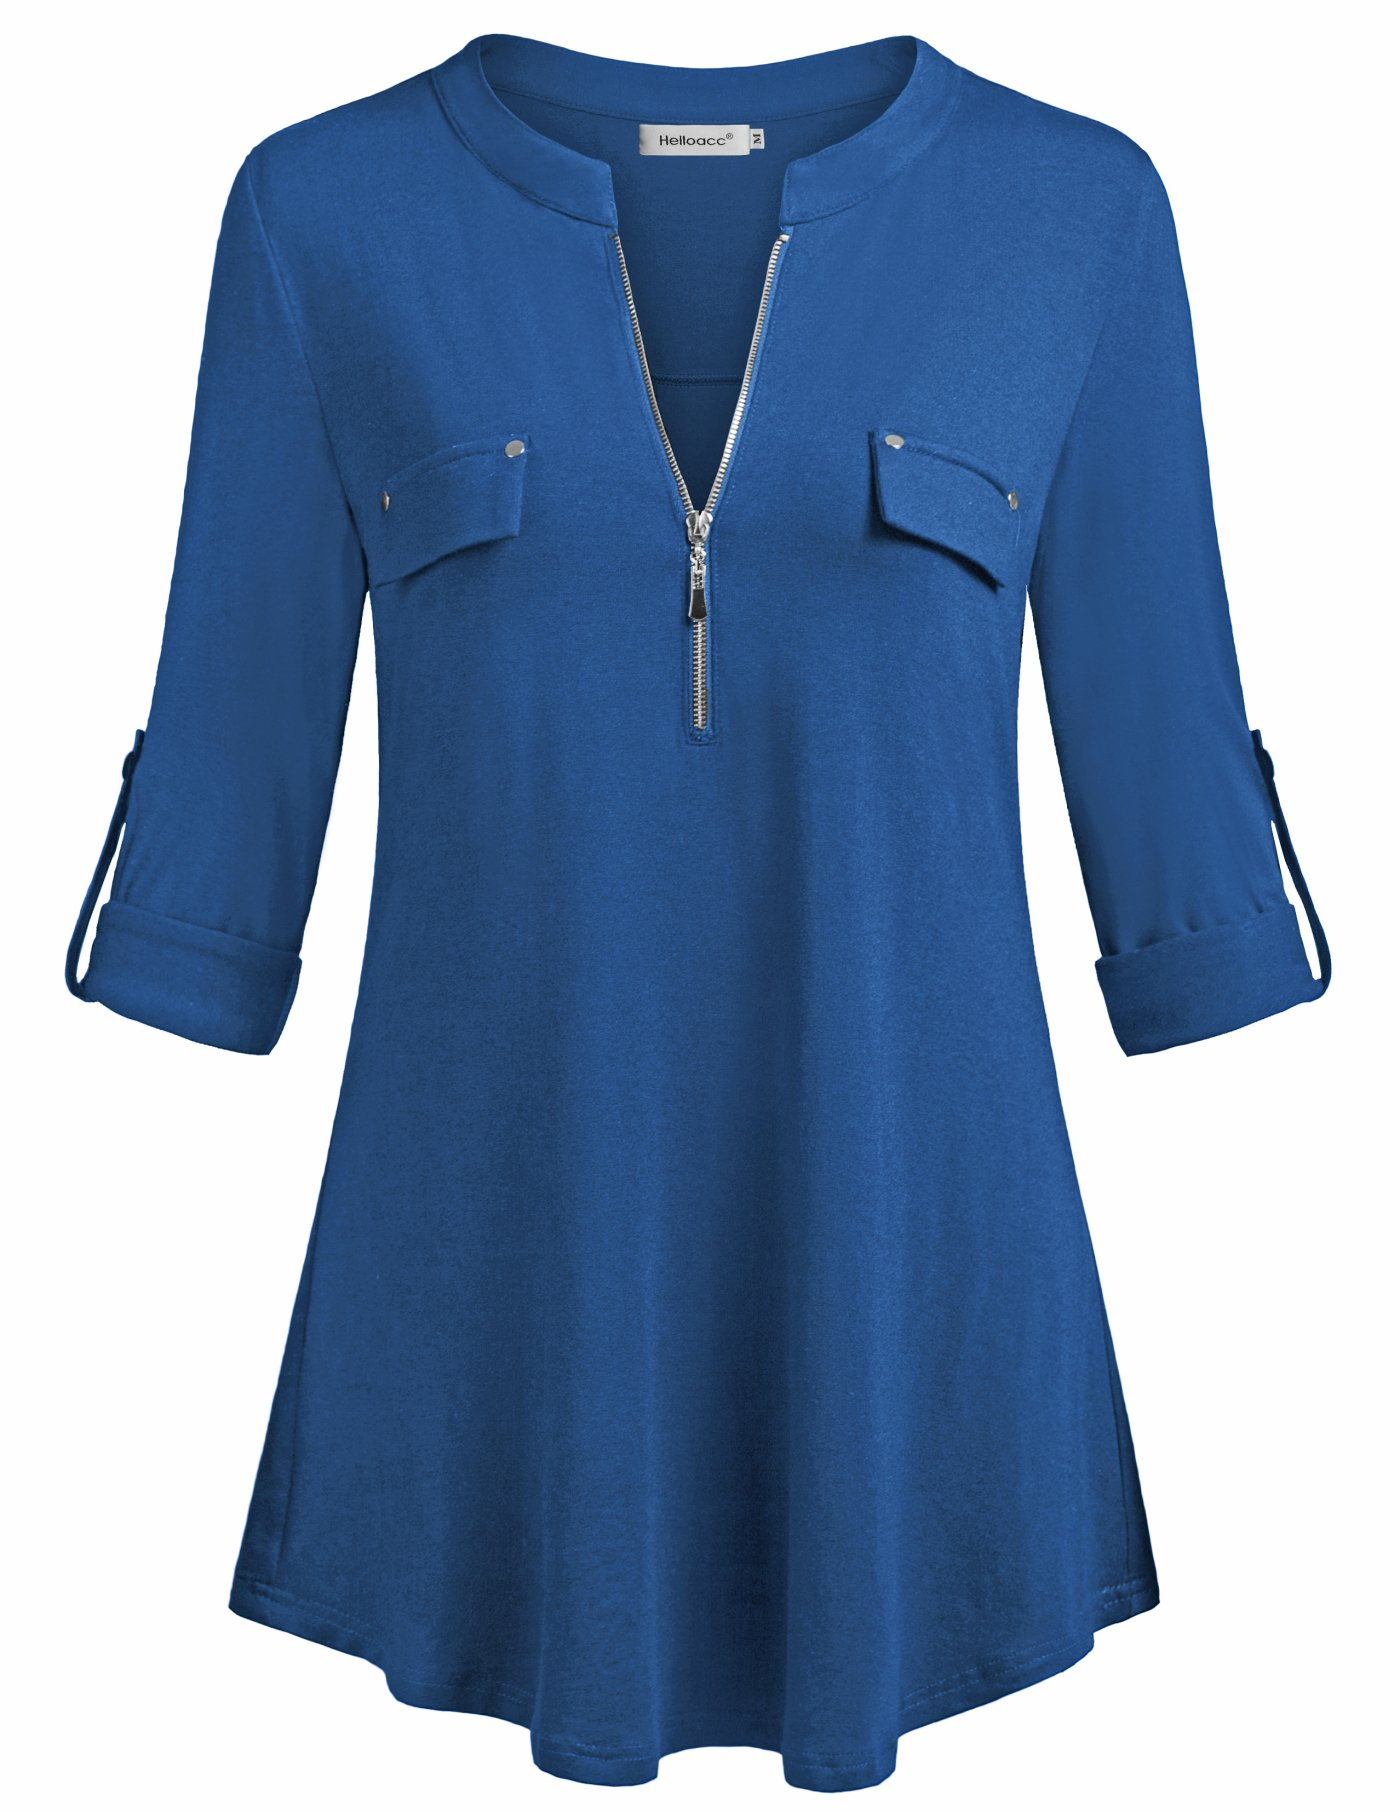 Helloacc Tops & Blouses for Women,Classic Zip Up V Neck Office Shirts Fitted Aline Tunic Tops Long Shirts for Plus Women Office Lady Suit Active Cutout Latest Fashion Sexy Size XL Blue US16